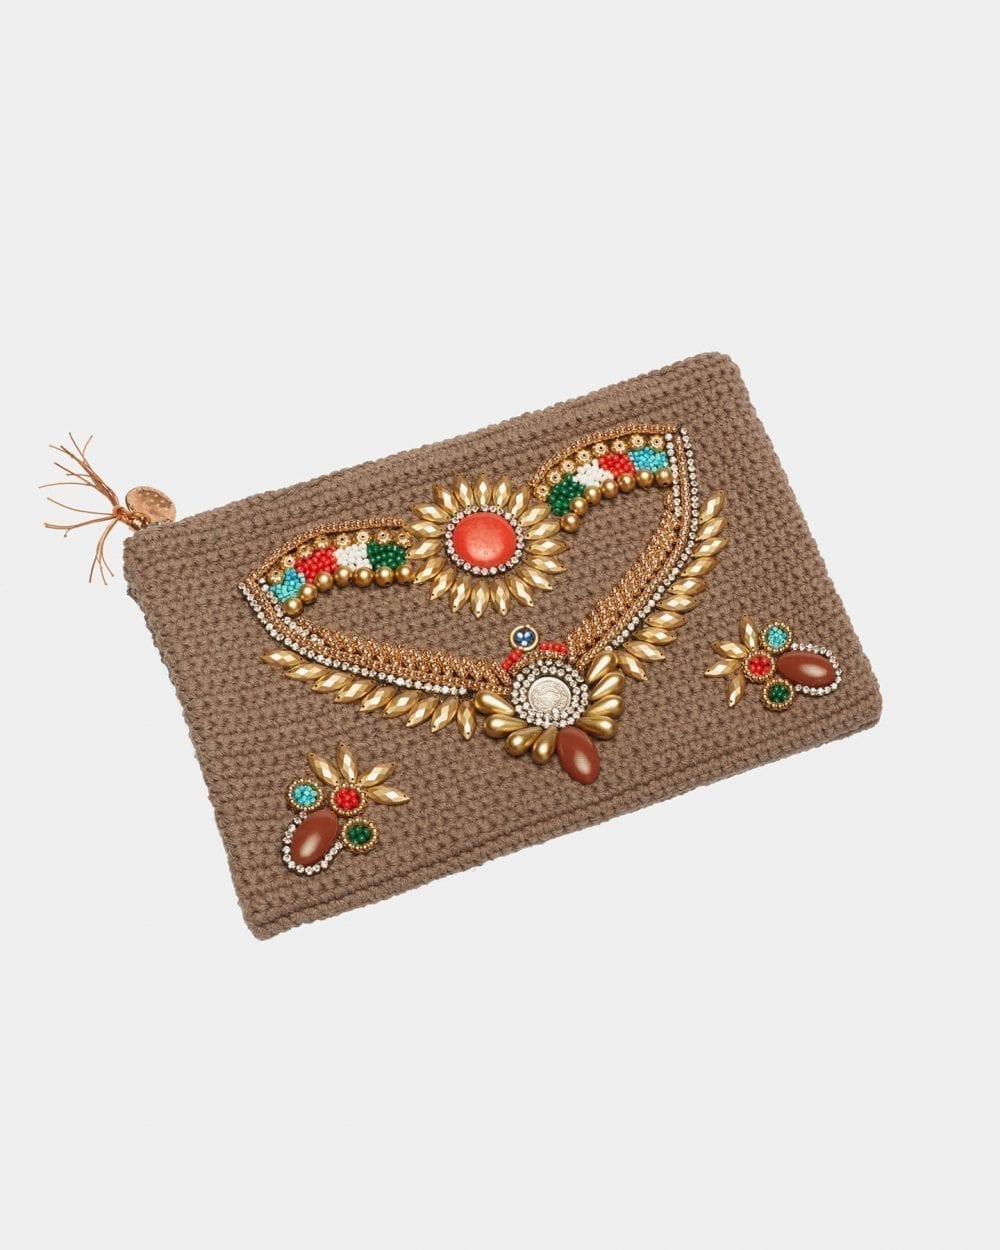 Signature Mincha clutch by ALLBYB Design, Philadelphia